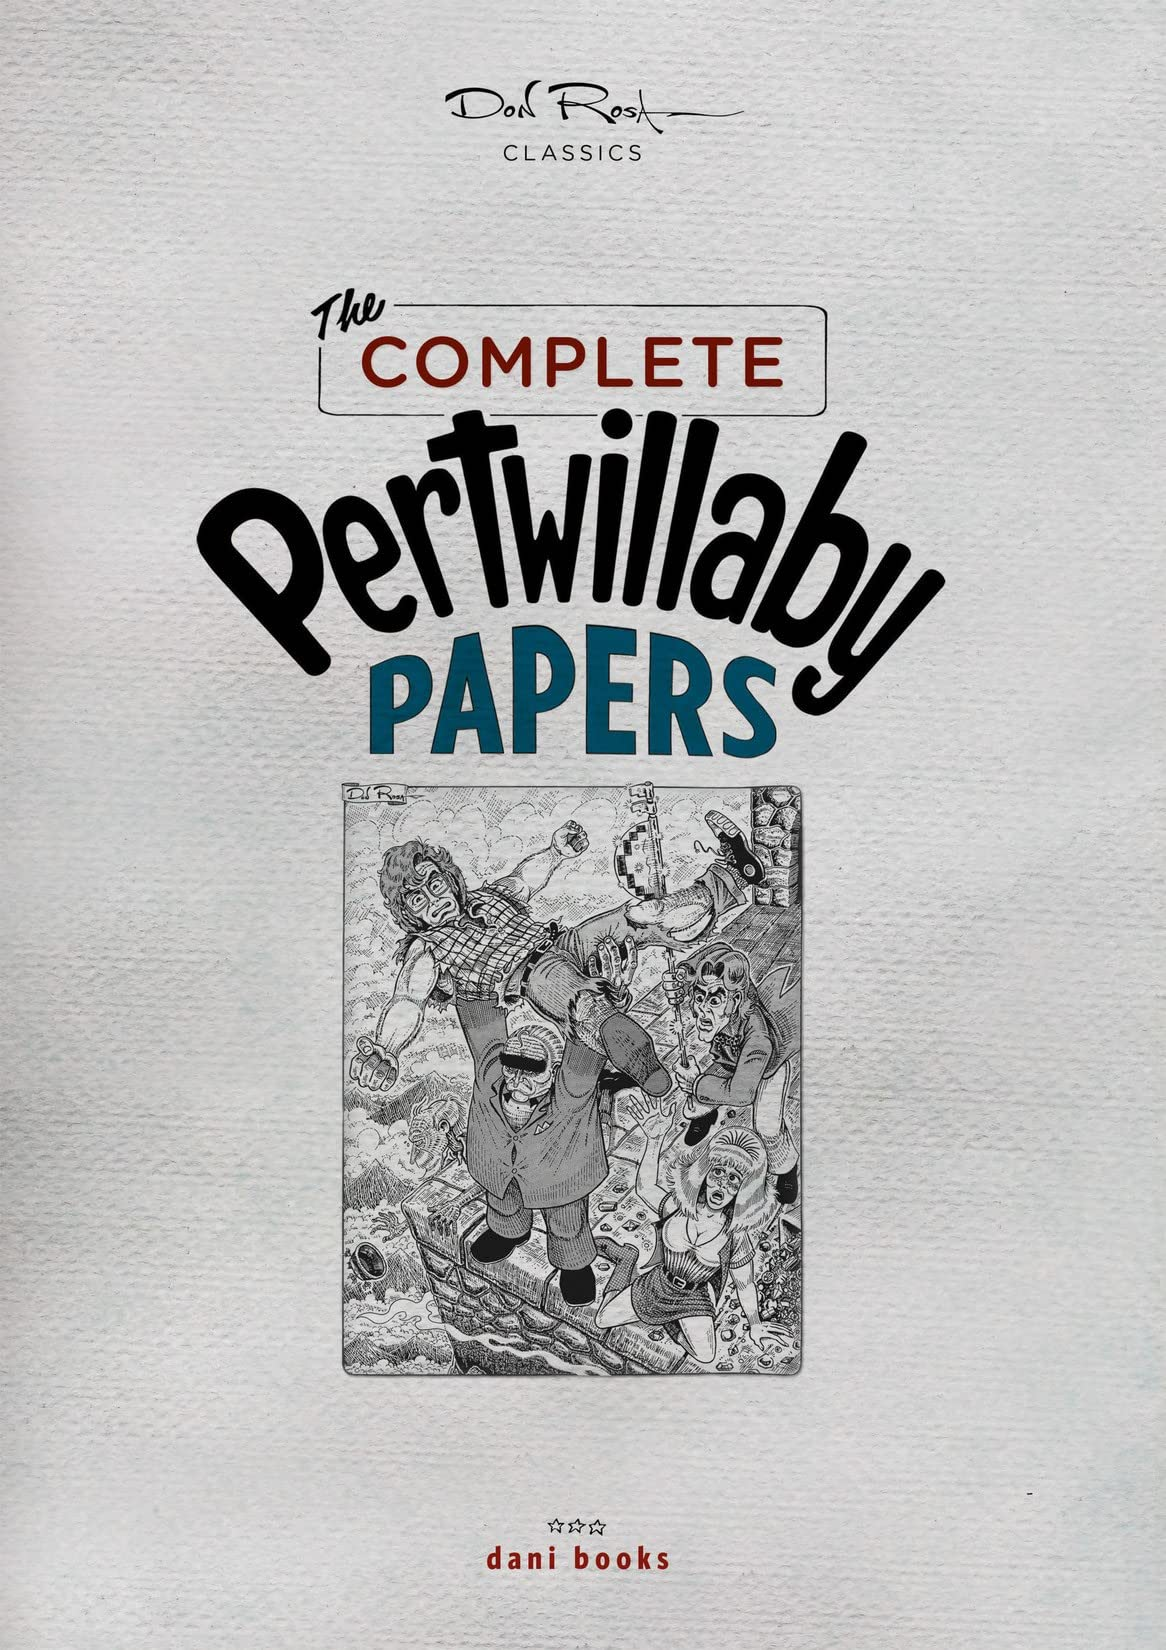 The Complete Pertwillaby Papers